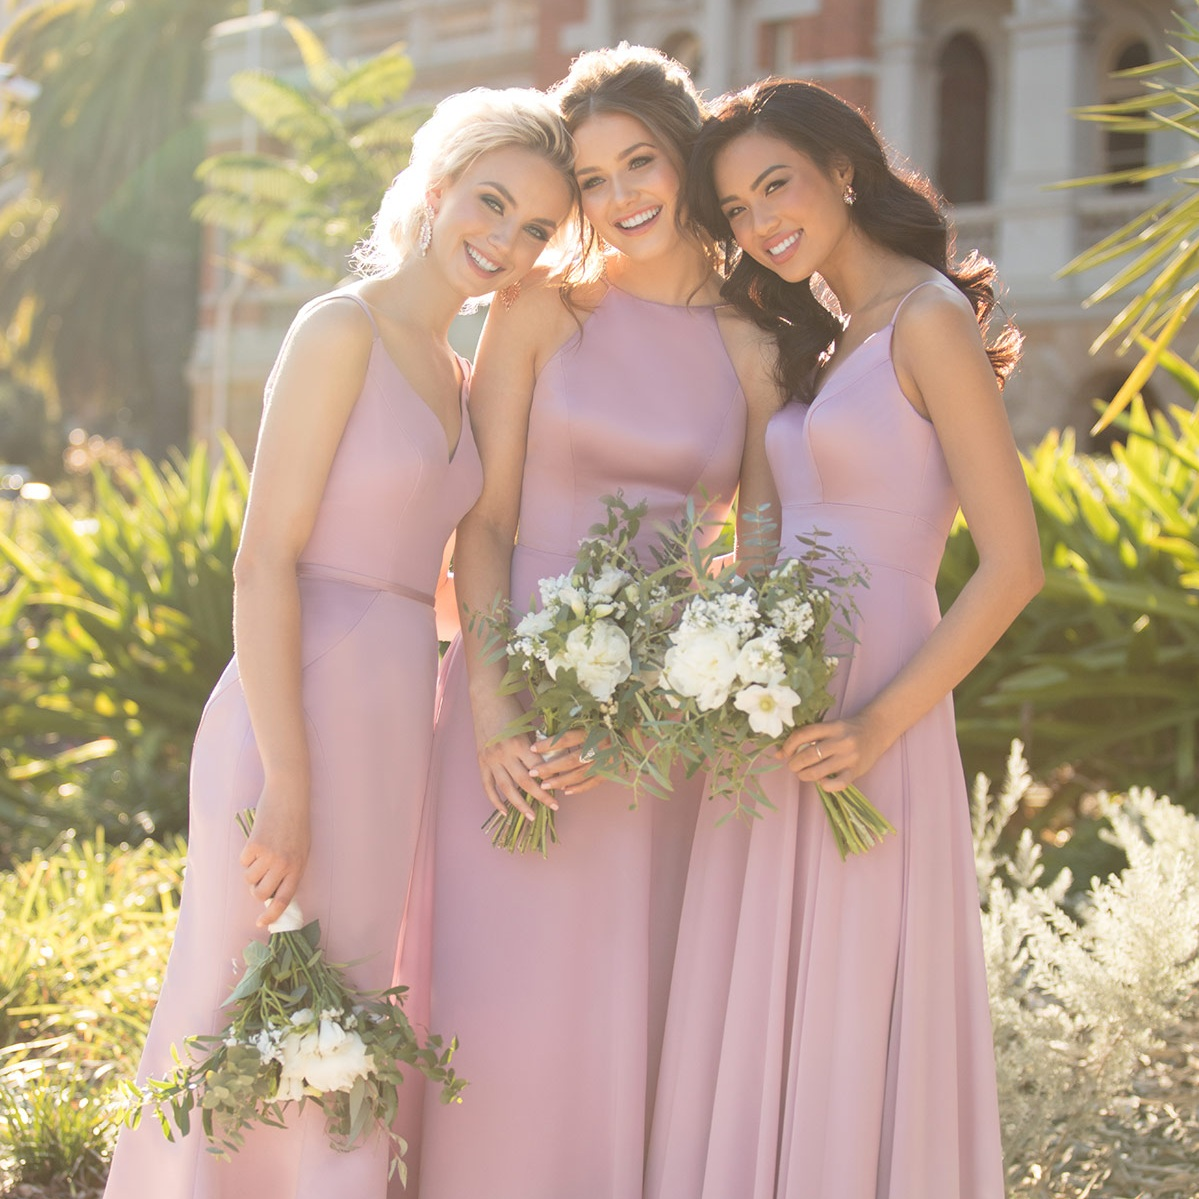 b5ff5c0fd95b Bridesmaids — Bateau Bridal Boutique | Anchorage, Alaska